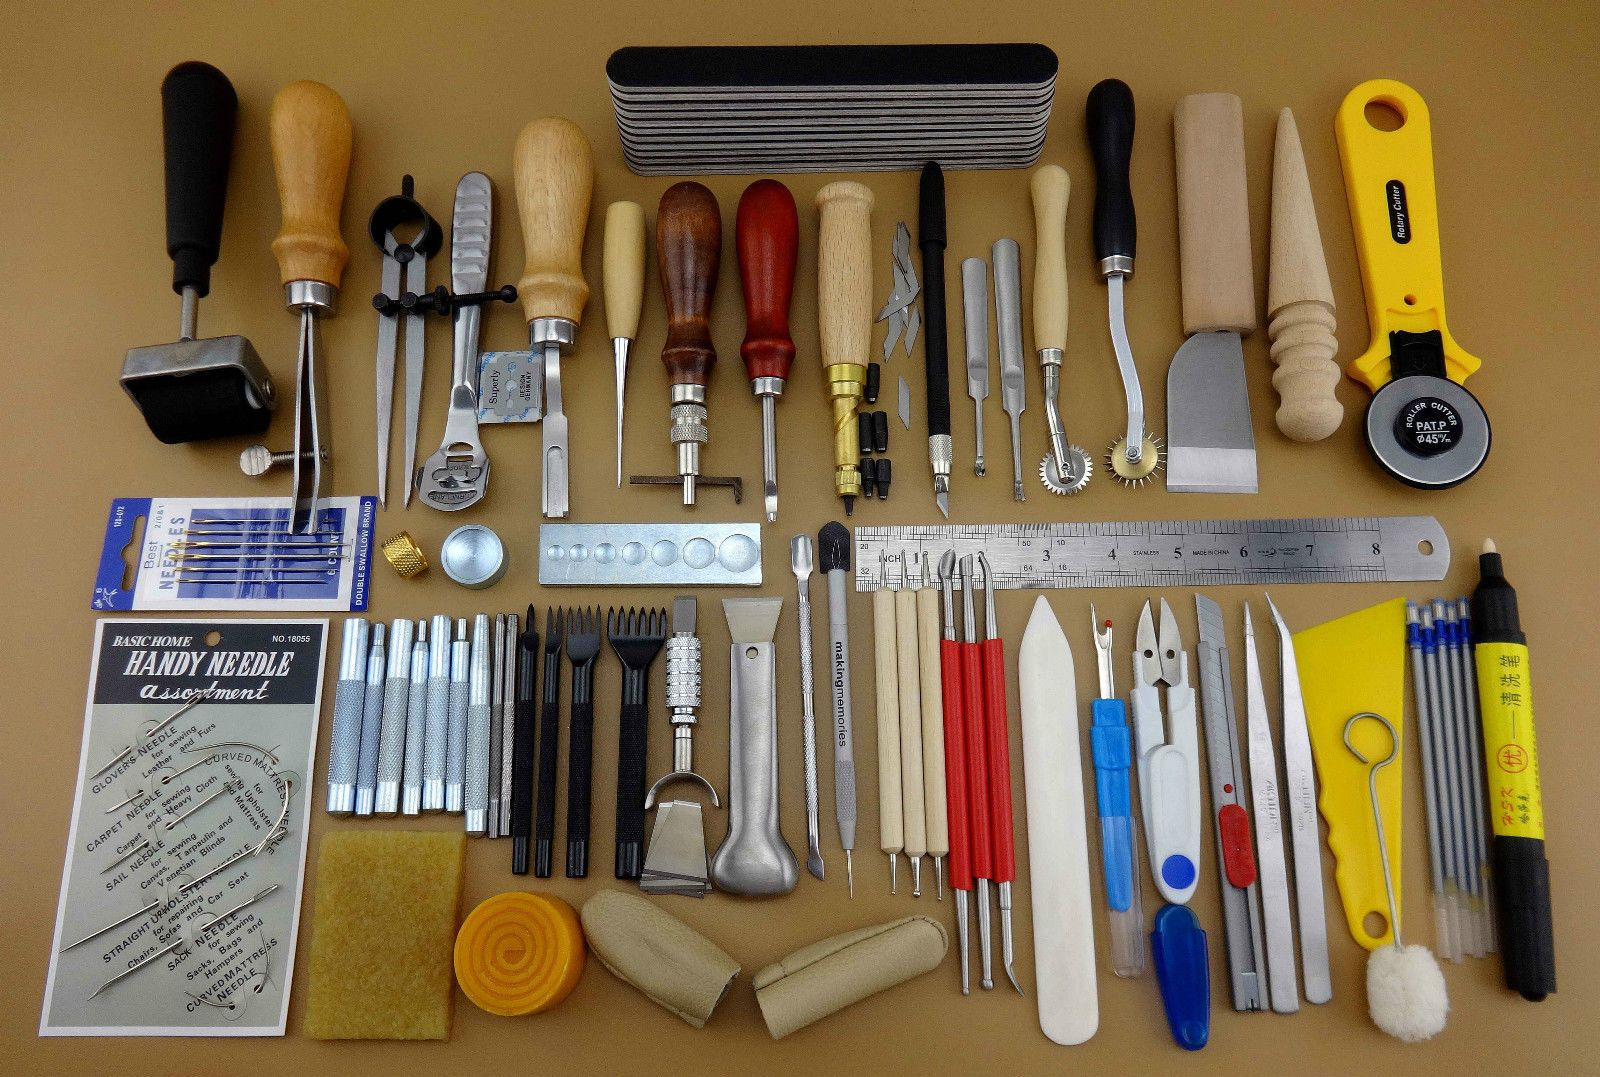 60 tools set for leather crafting